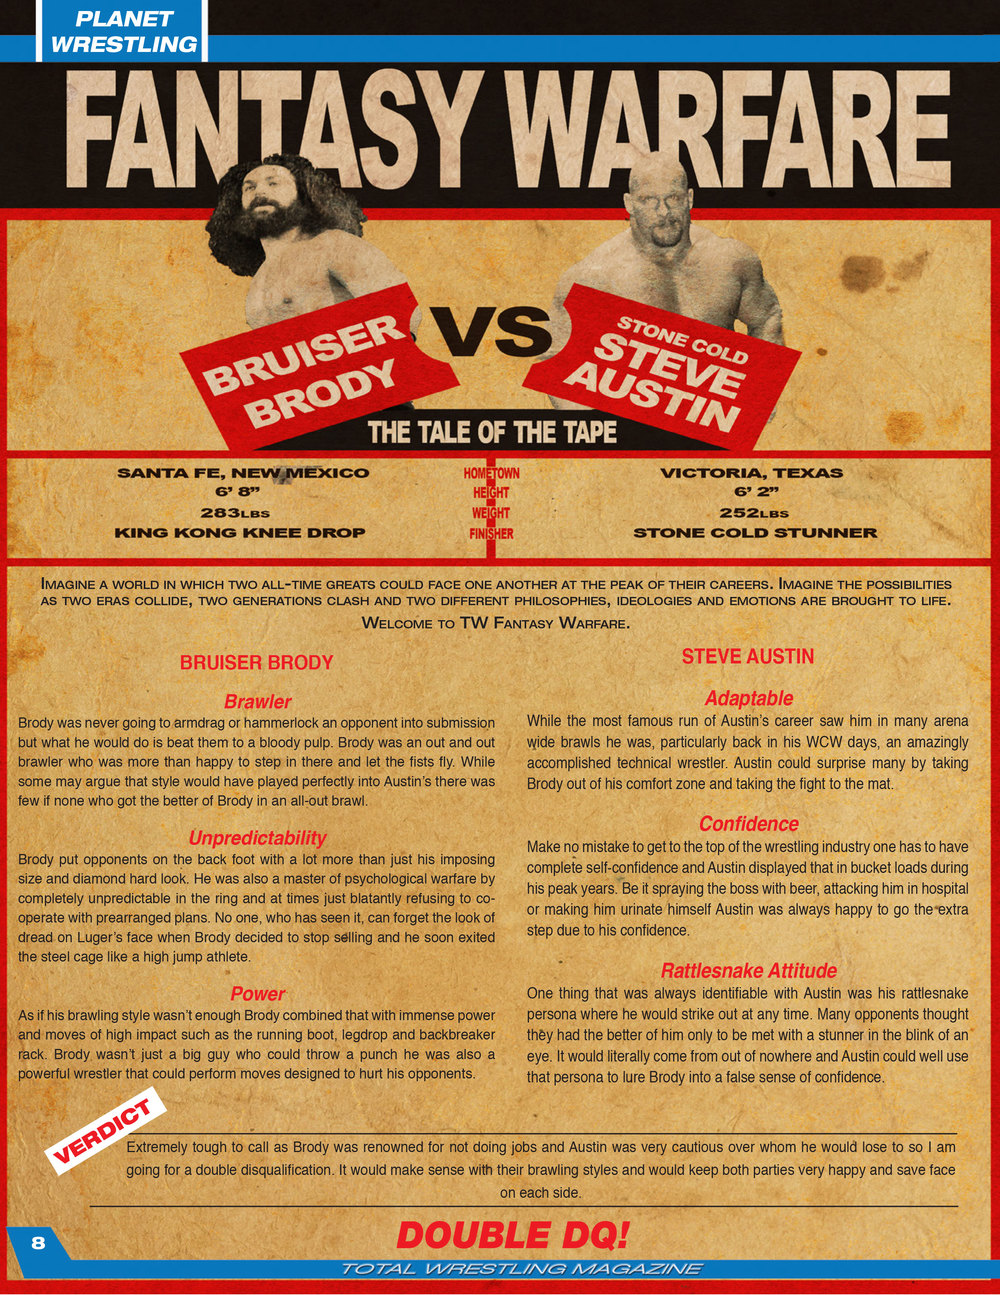 Total Wrestling Magazine Fantasy Warfare feature.